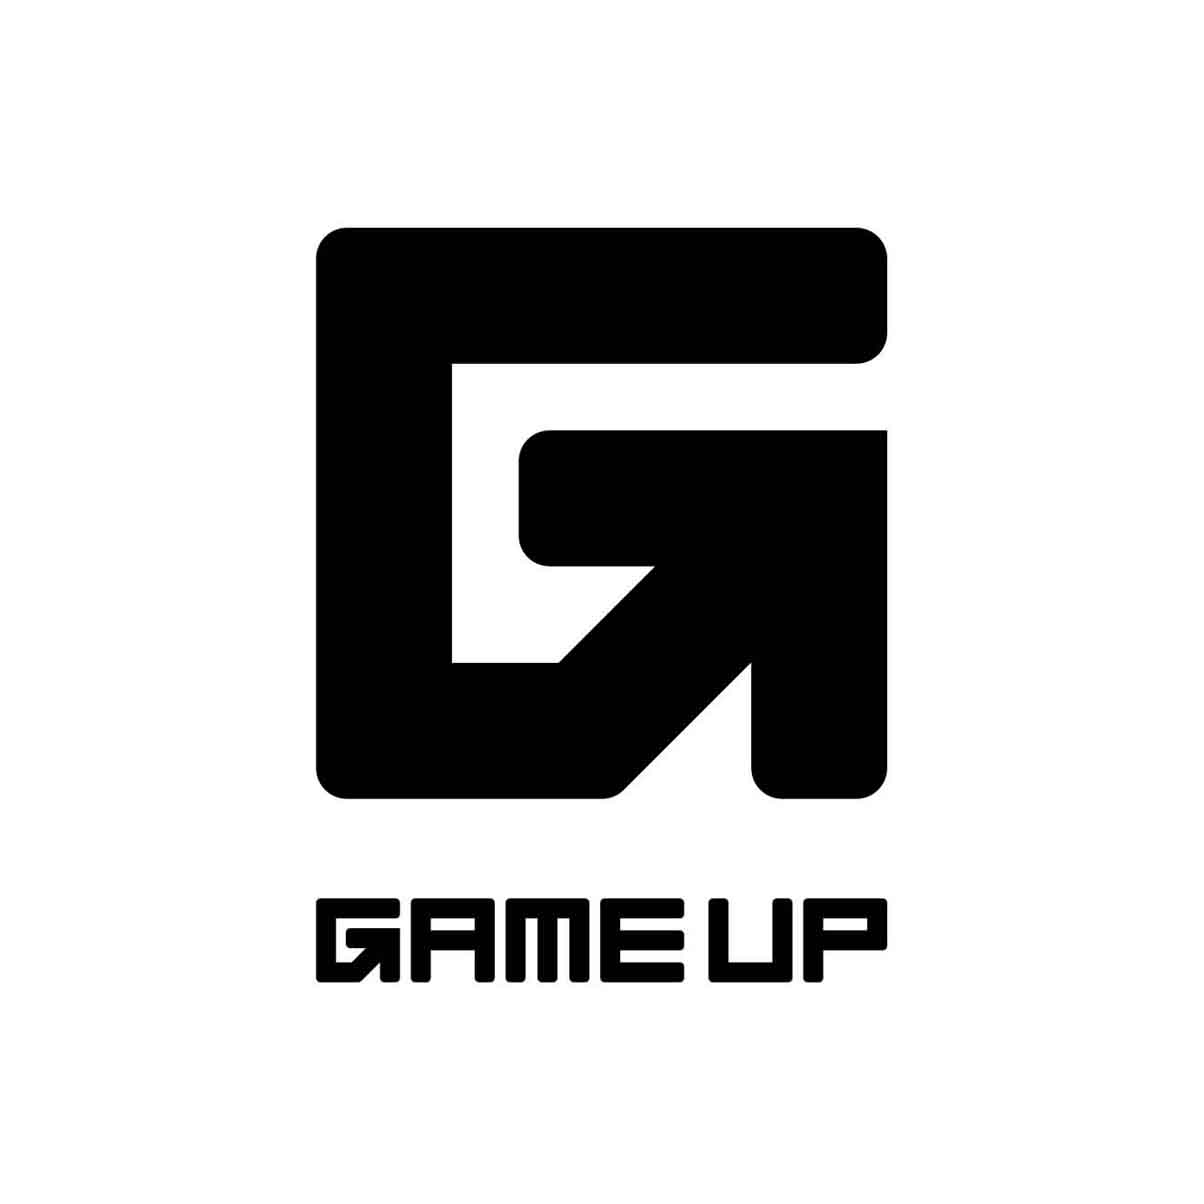 GAME_UP_G_MARK copy copy.jpg